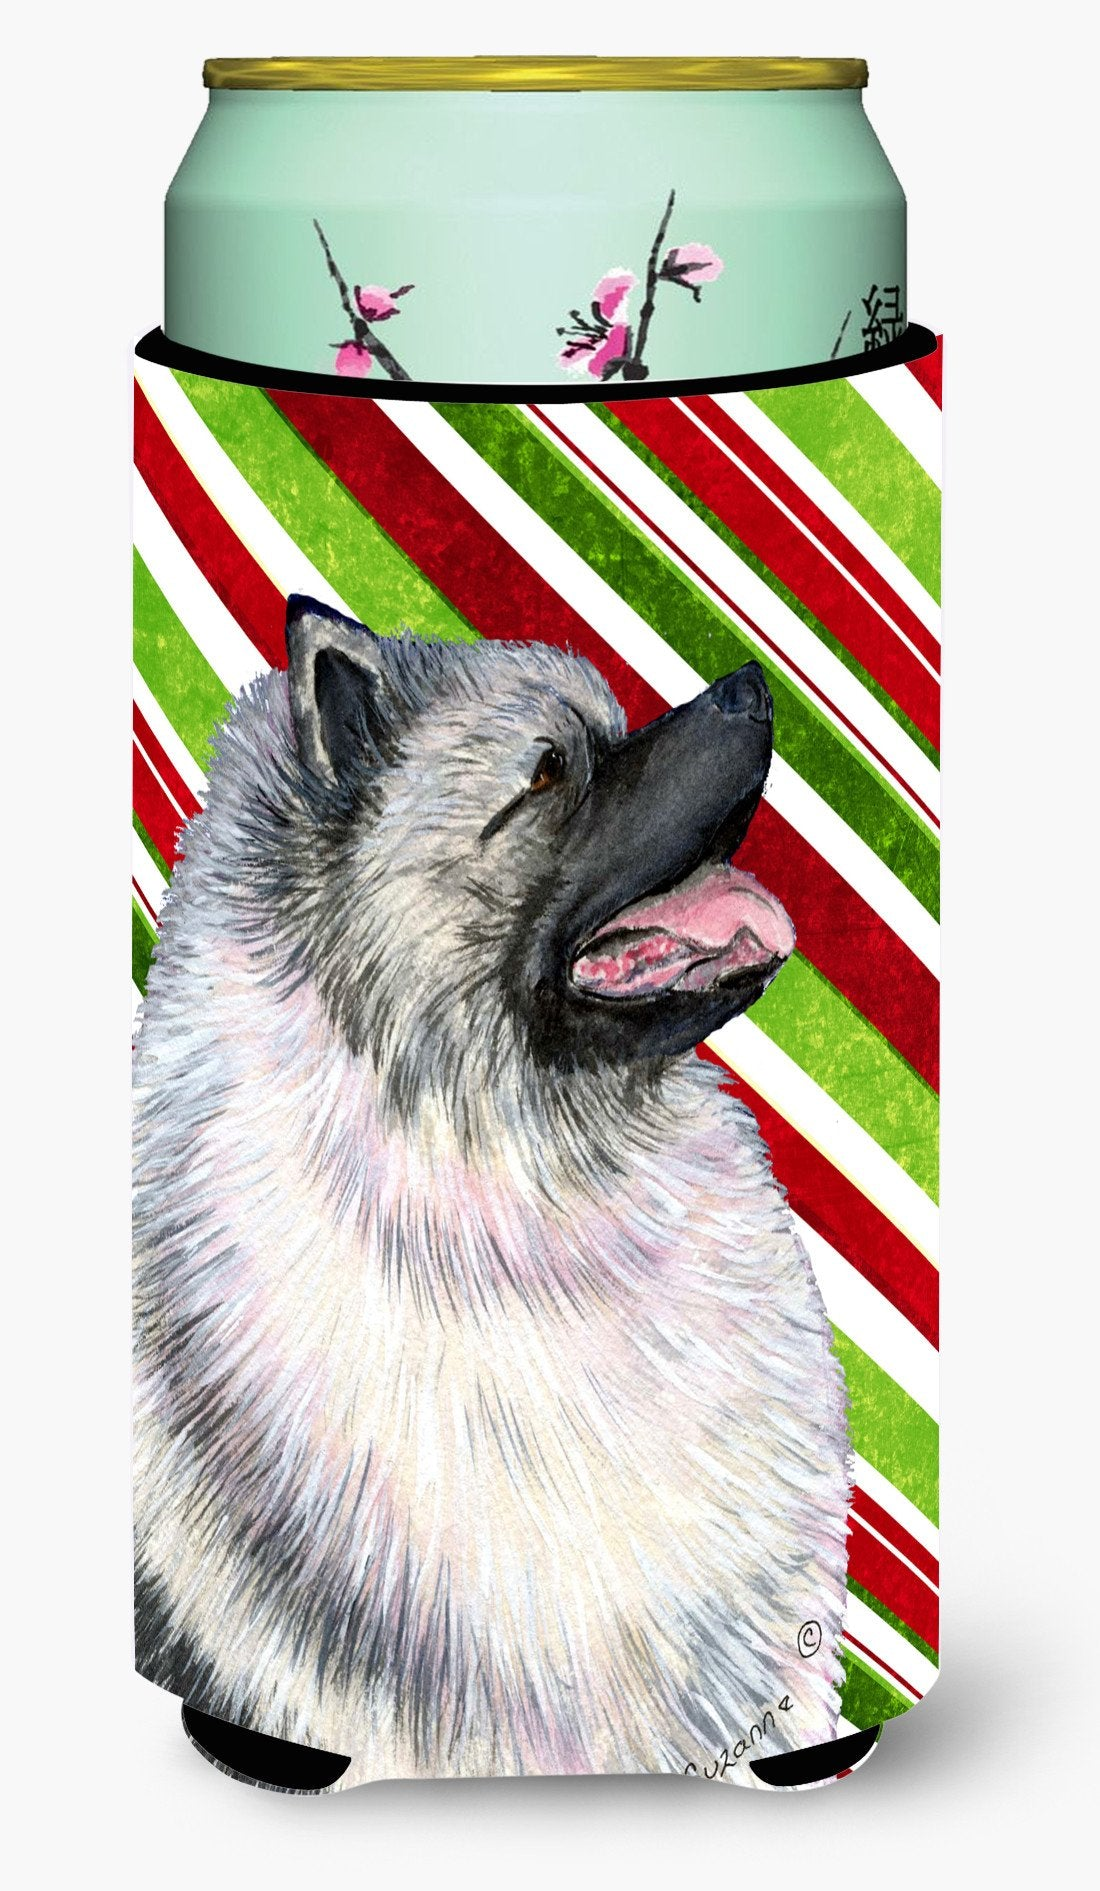 Keeshond Candy Cane Holiday Christmas  Tall Boy Beverage Insulator Beverage Insulator Hugger by Caroline's Treasures